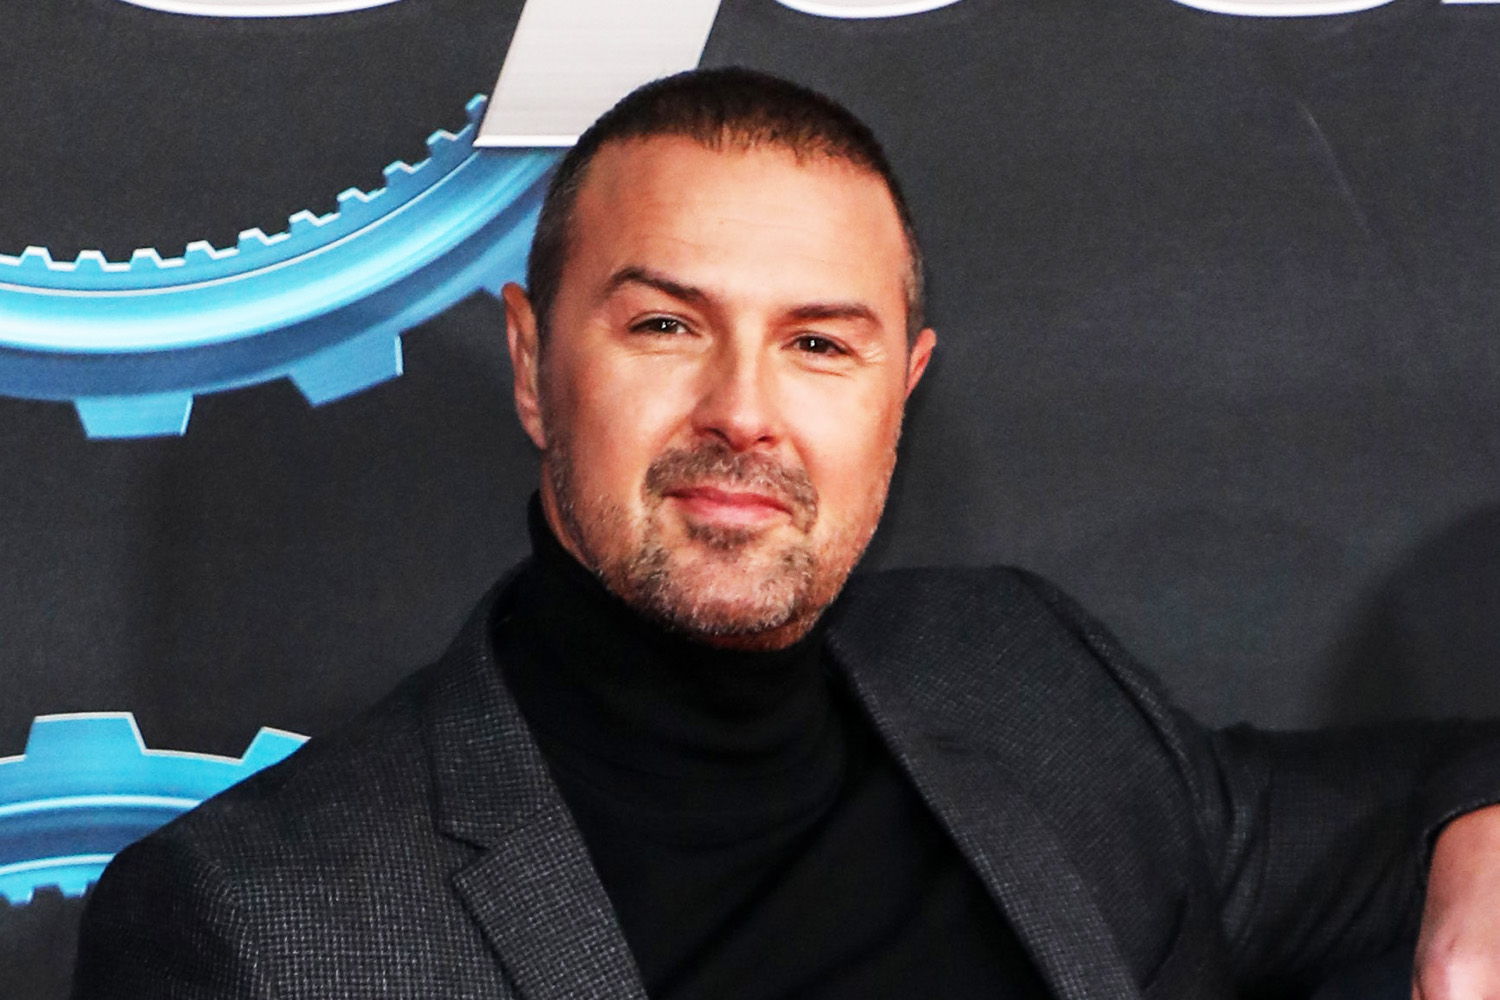 Paddy McGuinness branded 'silver fox' as he shows off another hair transformation